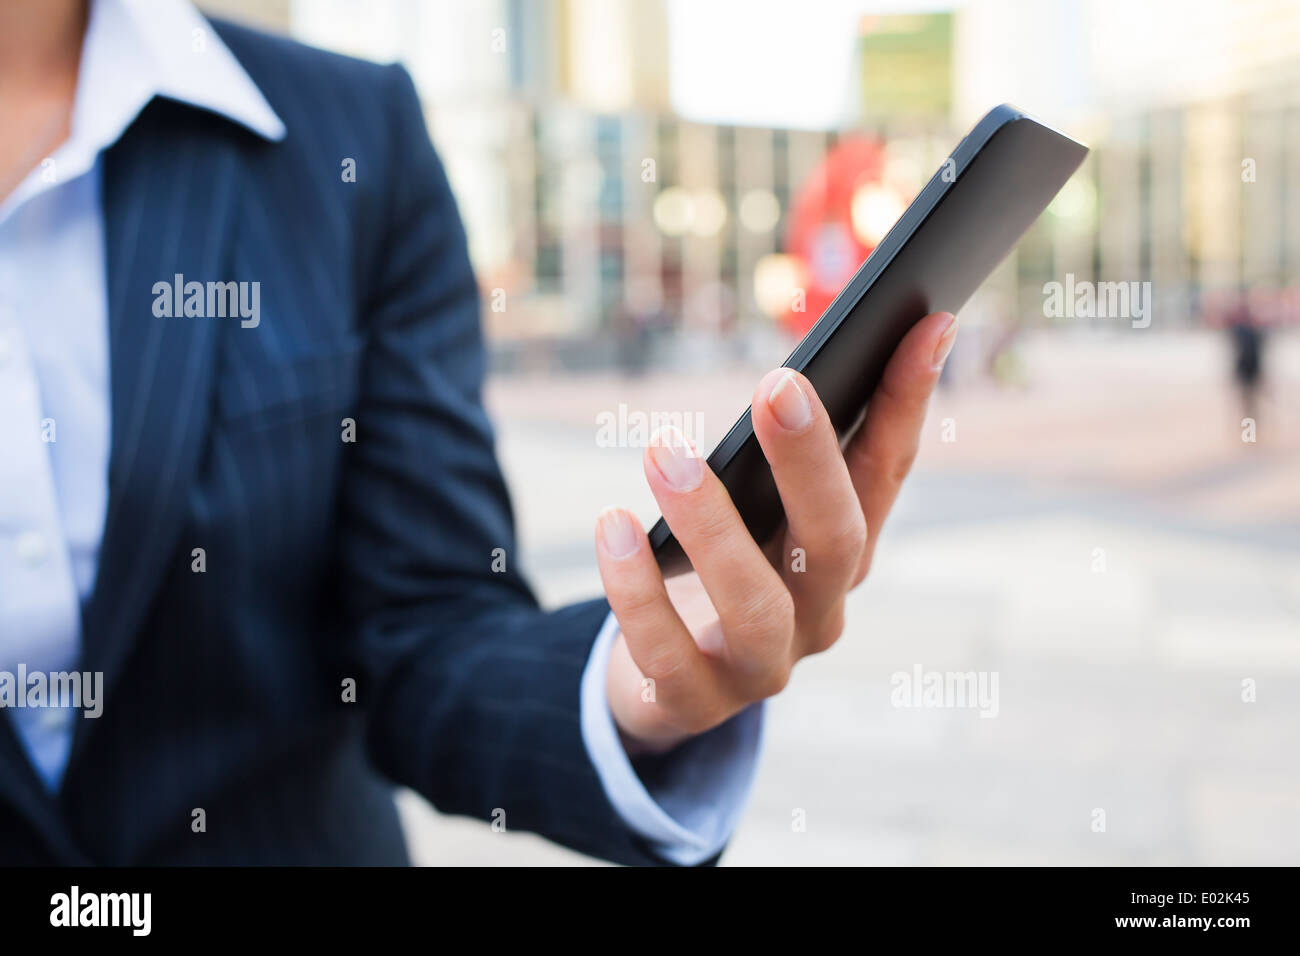 Female Mobile phone hand outdoor message sms e-mail - Stock Image